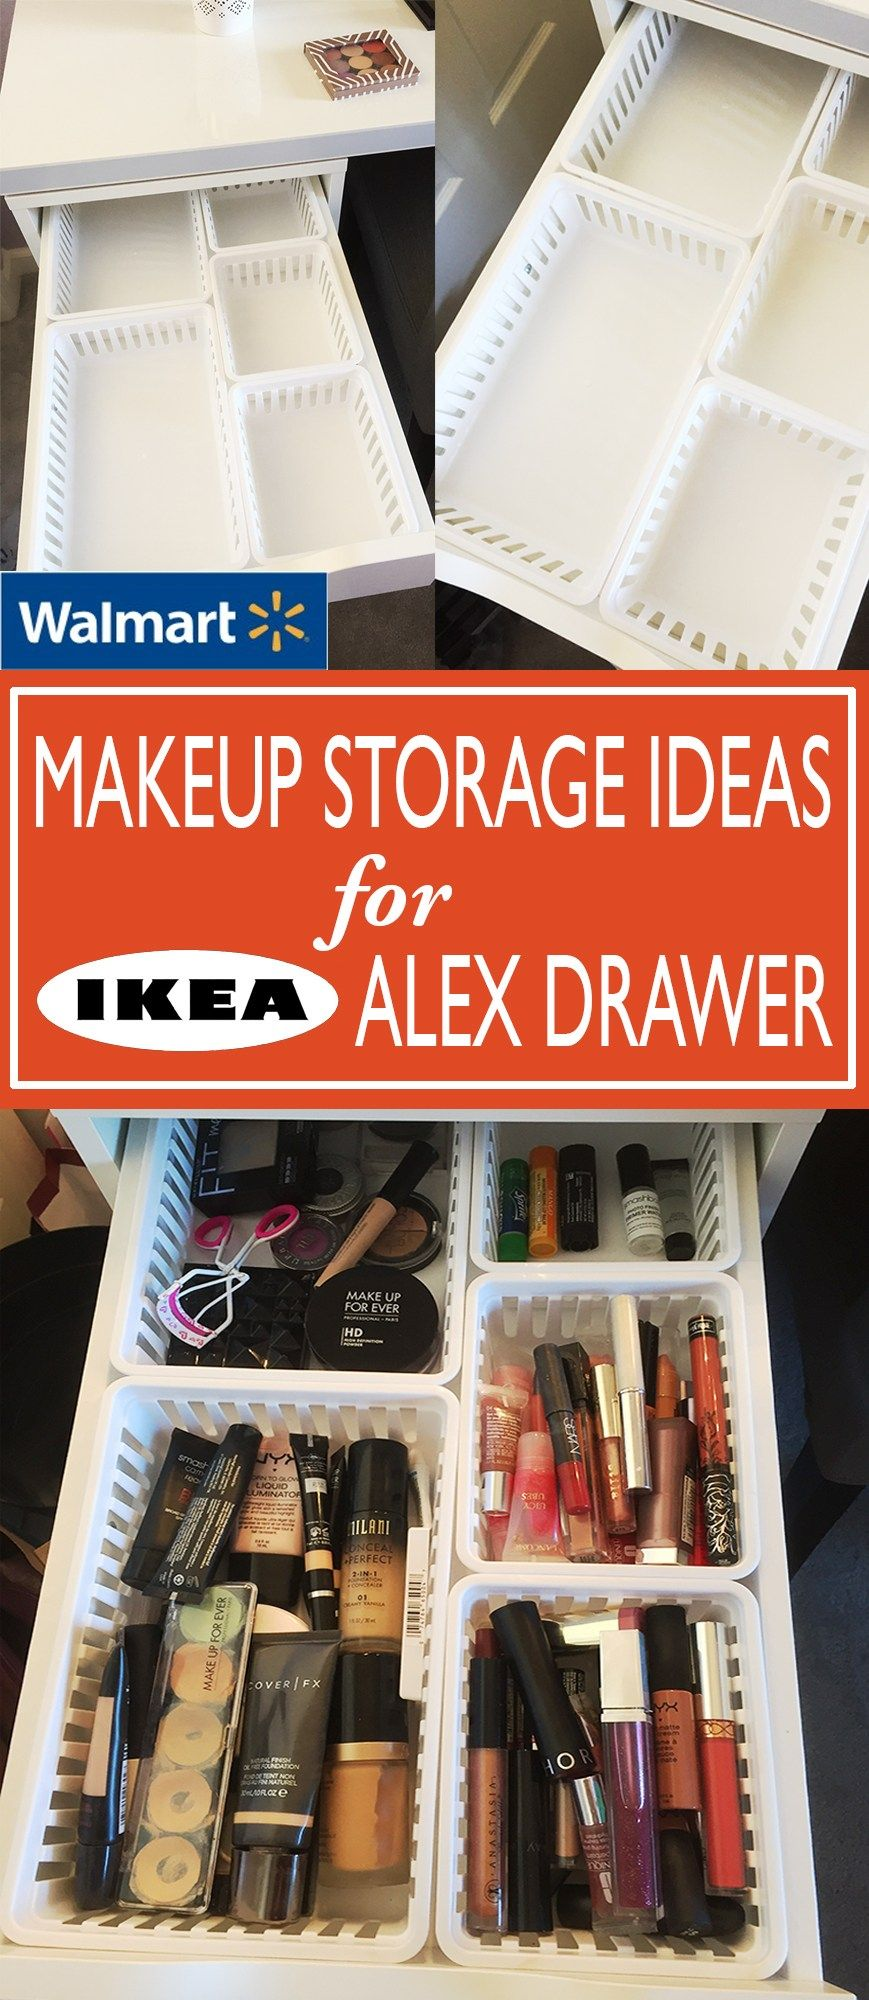 Walmart Makeup Storage Ideas For Ikea Alex Drawers With Images